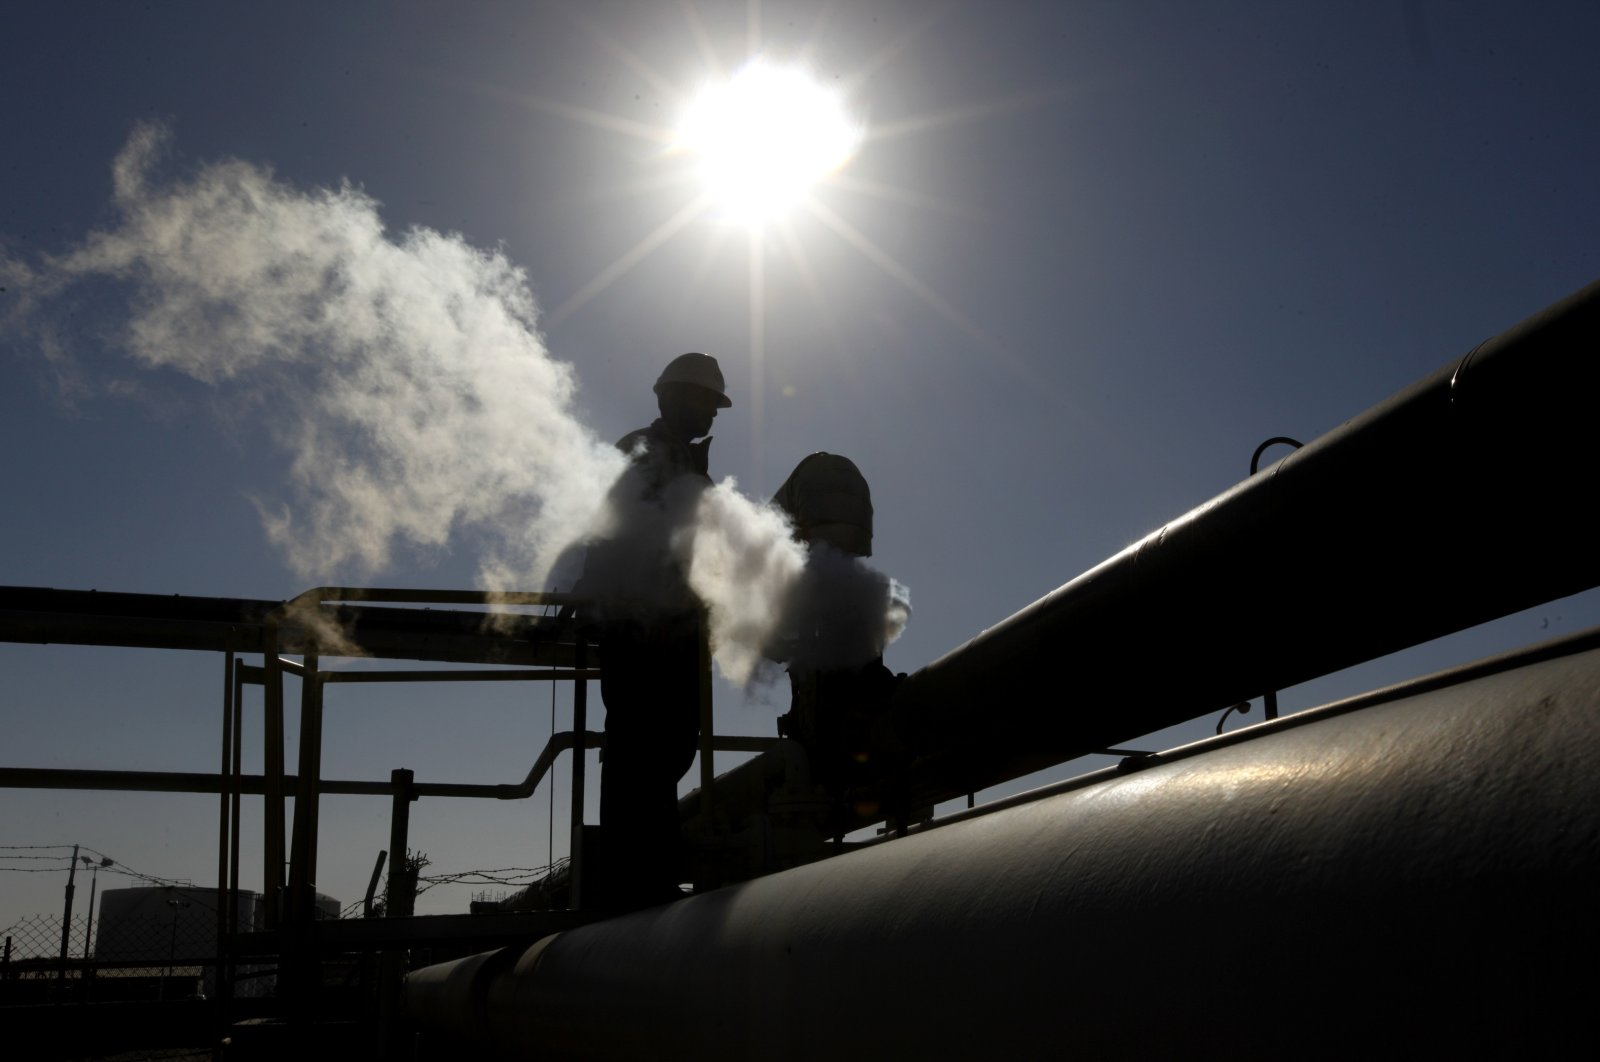 In this file photo, a Libyan oil worker, works at a refinery inside the Brega oil complex, in Brega, eastern Libya, Feb. 26, 2011. (AP File Photo)